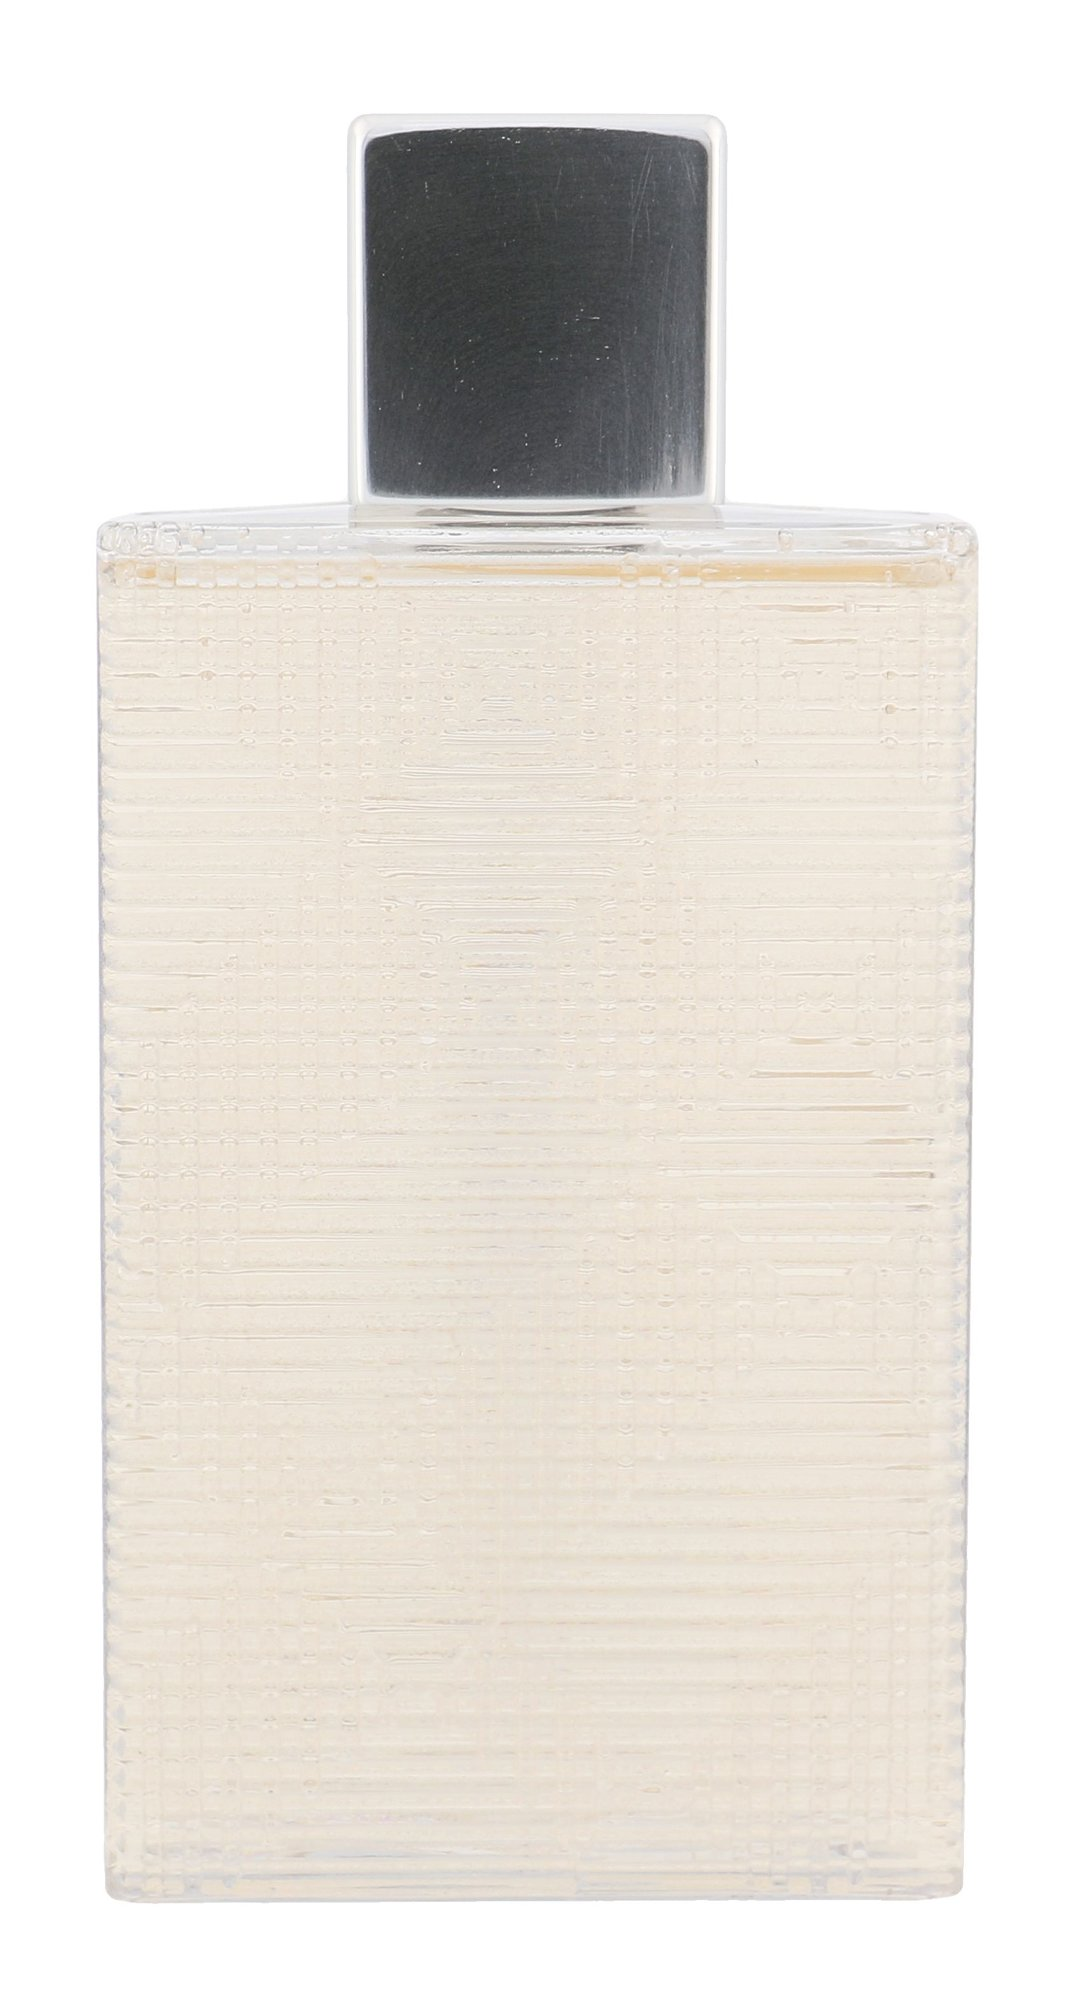 Burberry Brit for Her For Her Sprchový gel, W, 150 ml